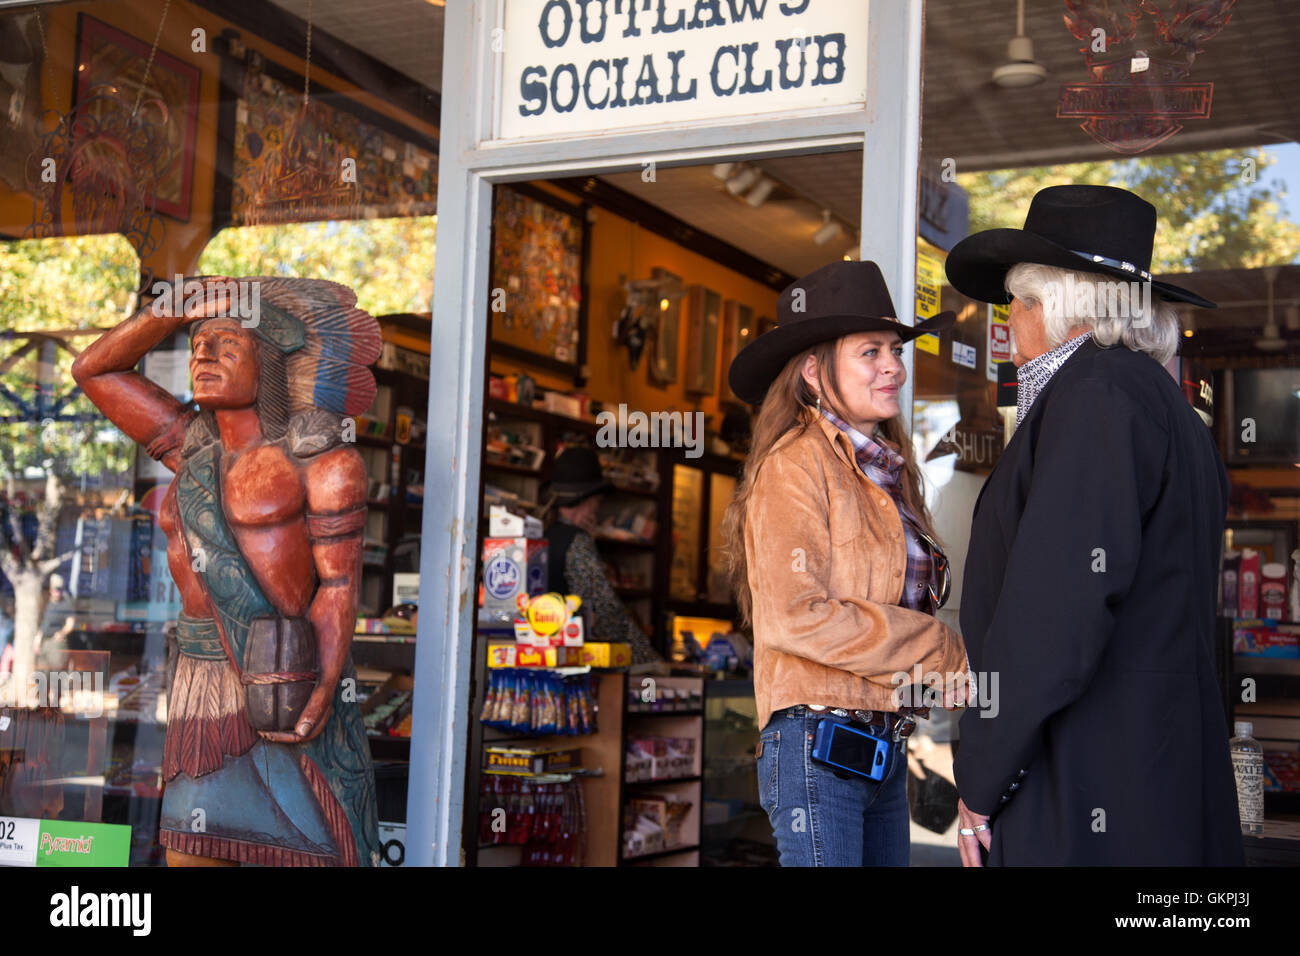 A couple stand outside the Outlaws Social Club store in Tombstone, Arizona. - Stock Image